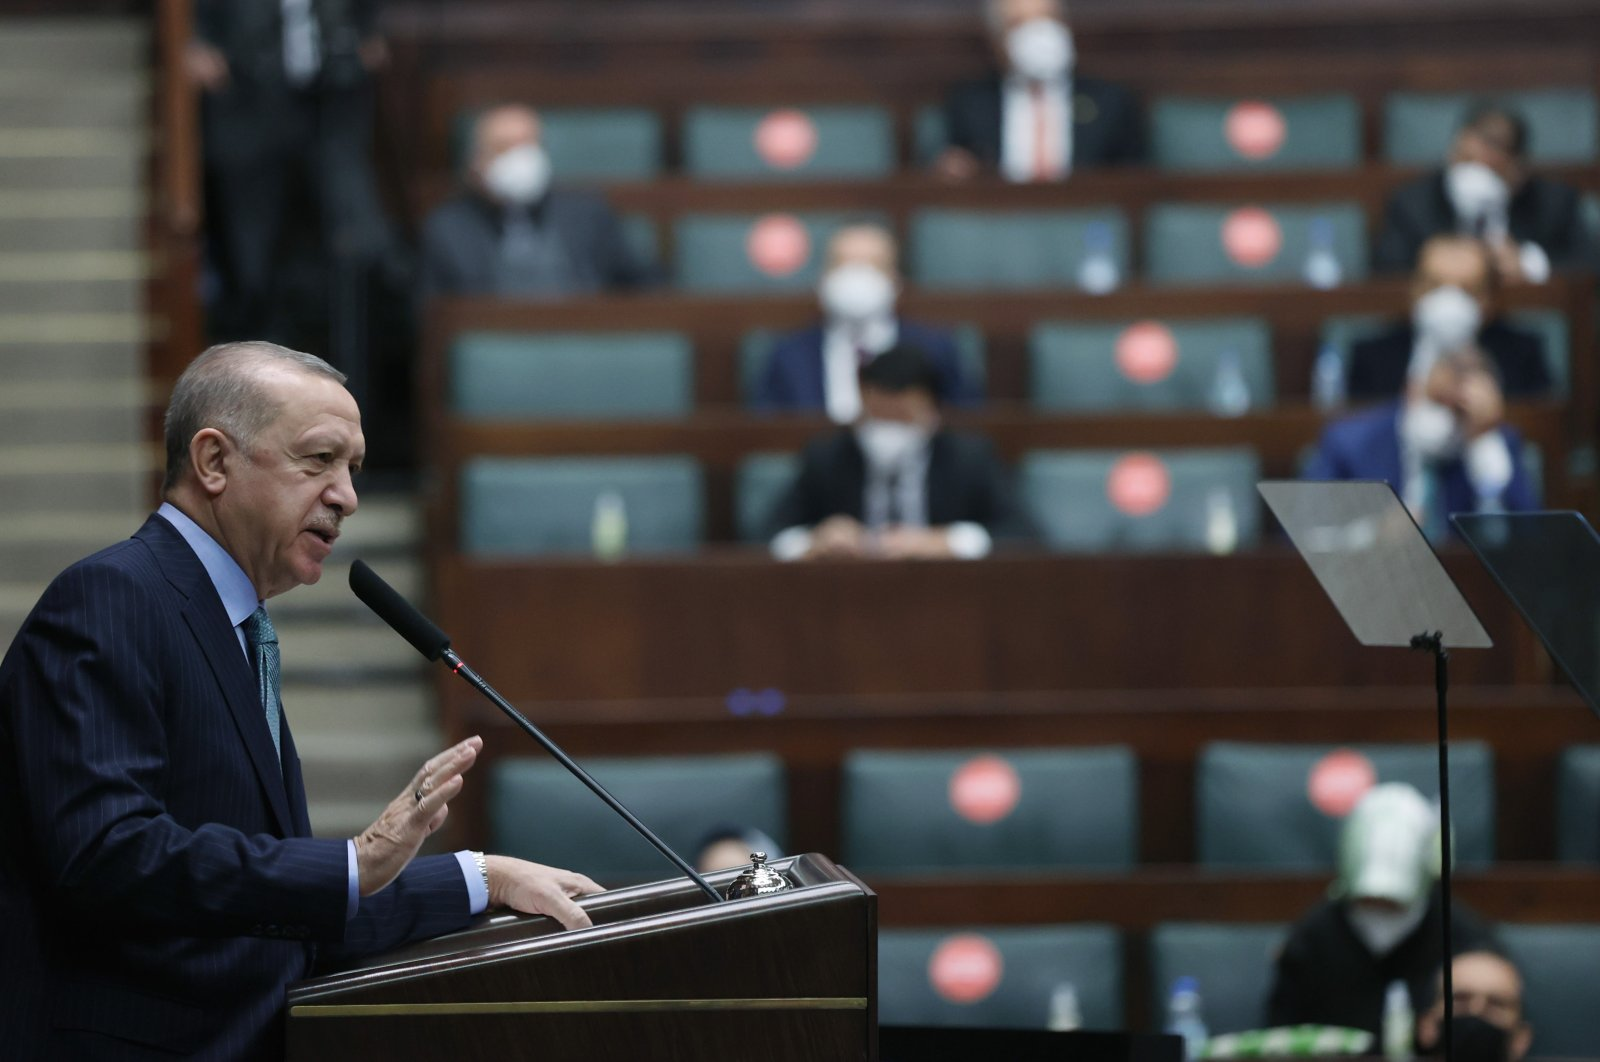 President Recep Tayyip Erdoğan speaks at the Justice and Development Party's (AK Party) Parliamentary Group meeting at the Turkish Parliament on Feb. 24, 2021. (IHA Photo)